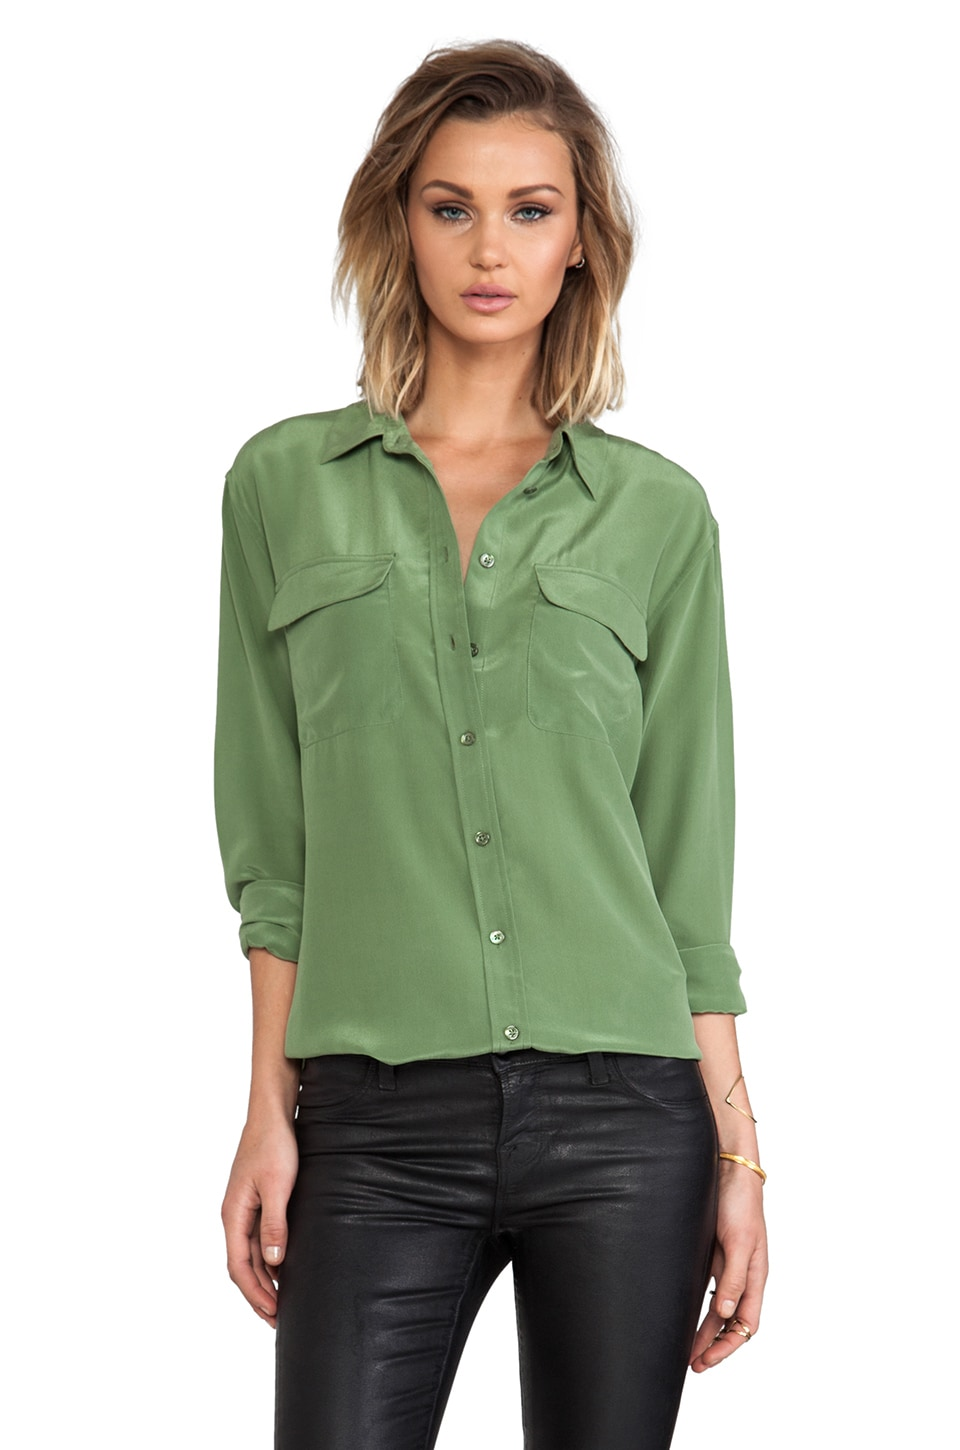 Equipment Signature Super Vintage Wash Blouse in Safari Green